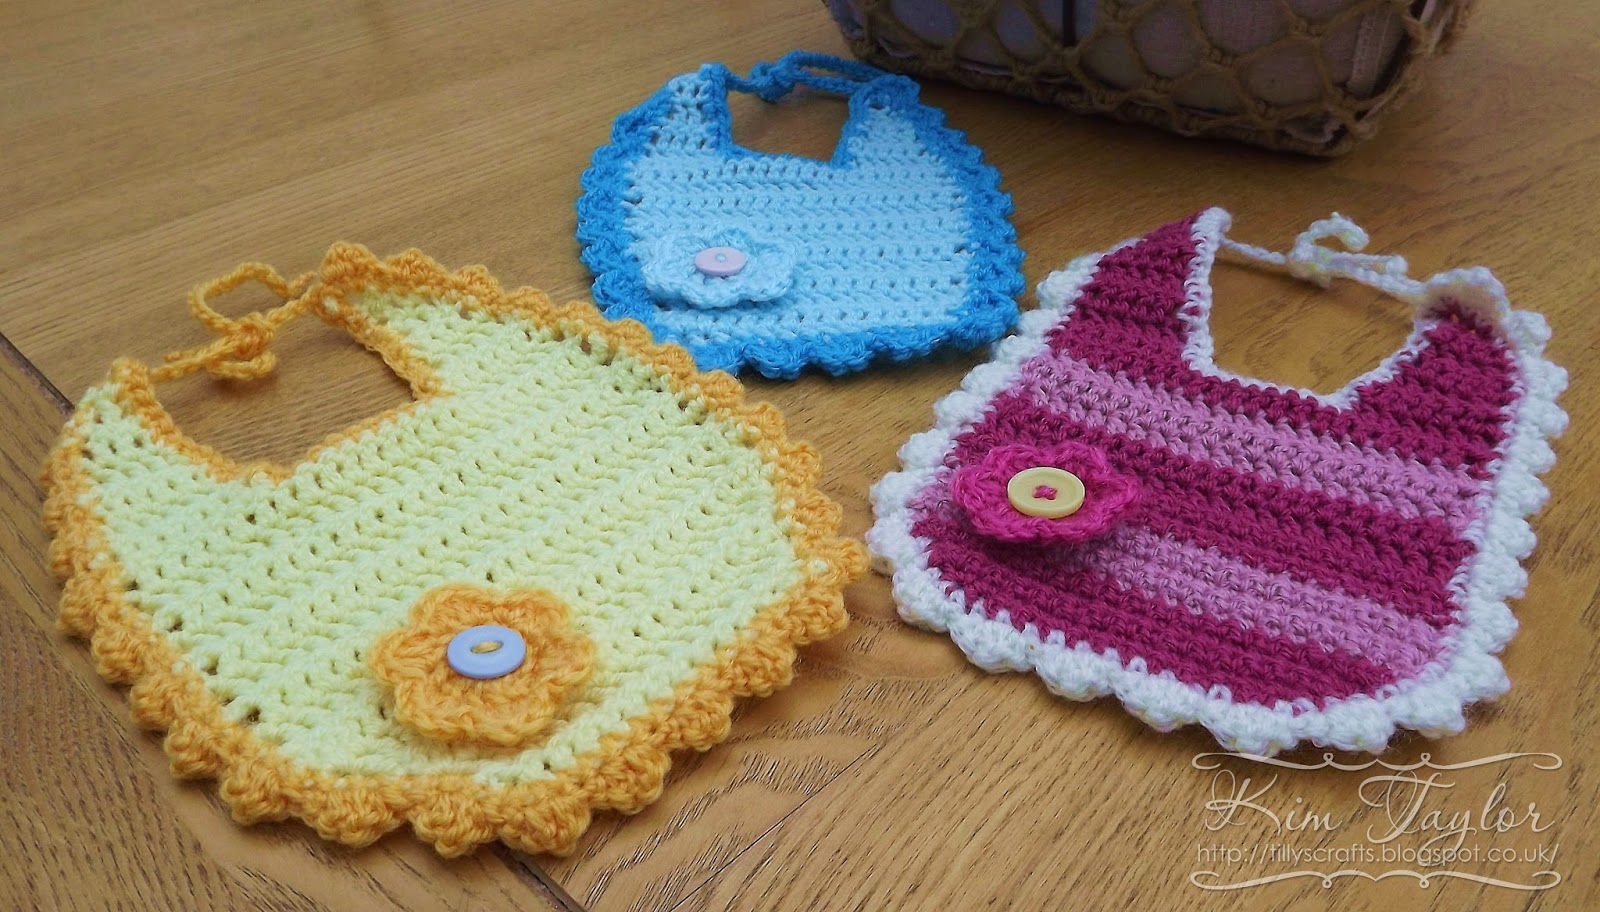 http://tillyscrafts.blogspot.co.uk/2015/04/ive-gone-all-baby.html